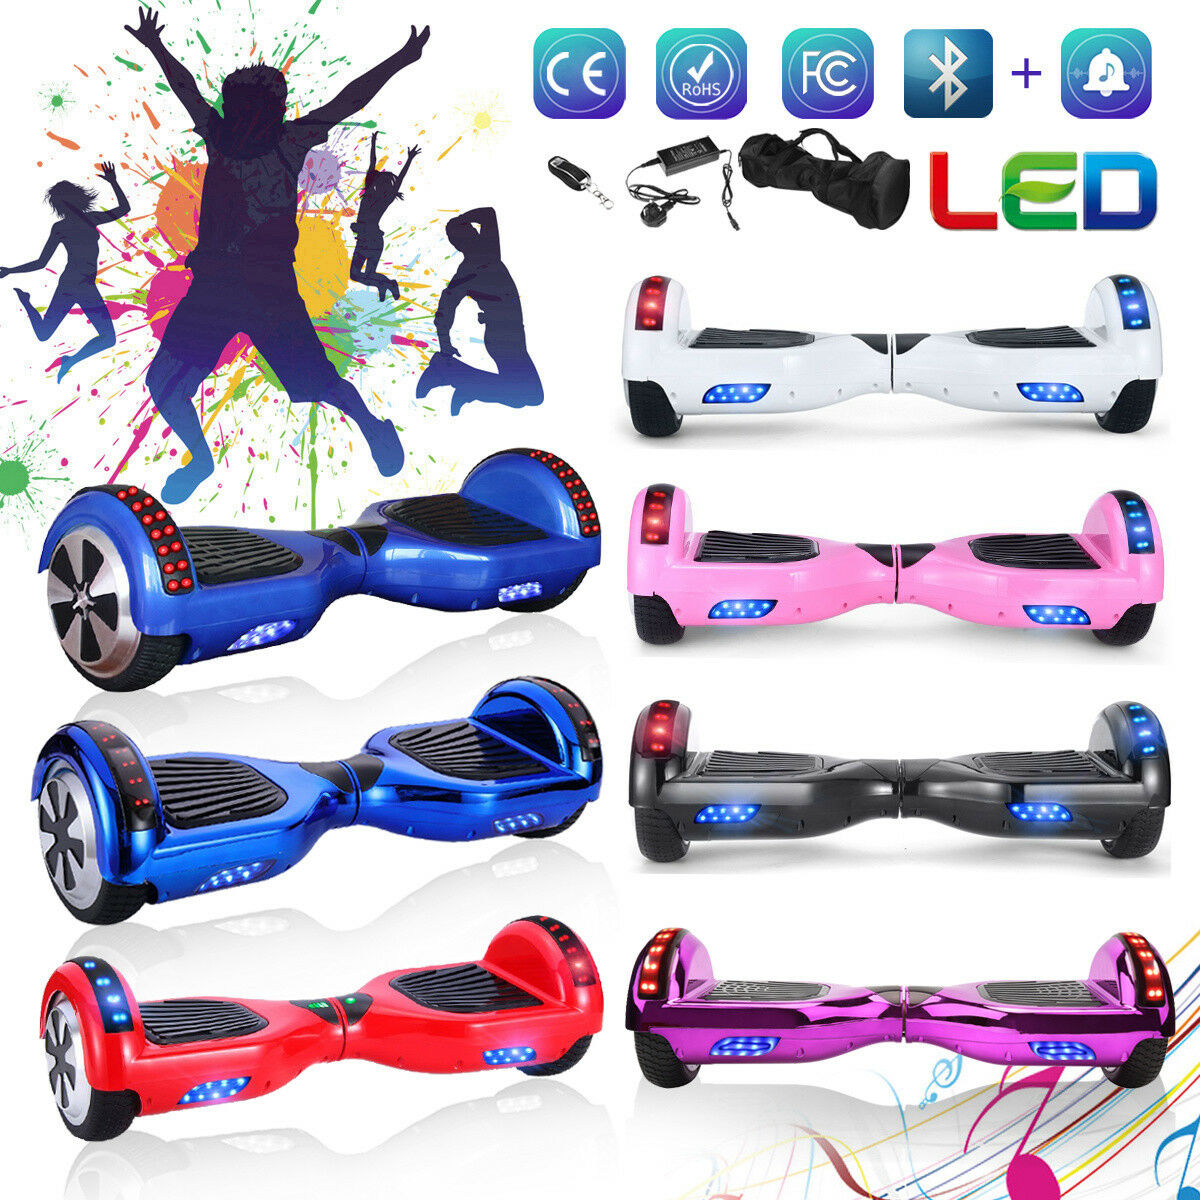 6.5 inch Electric Self Balance Scooter blueETOOTH BAG LED REMOTE For Fun Present